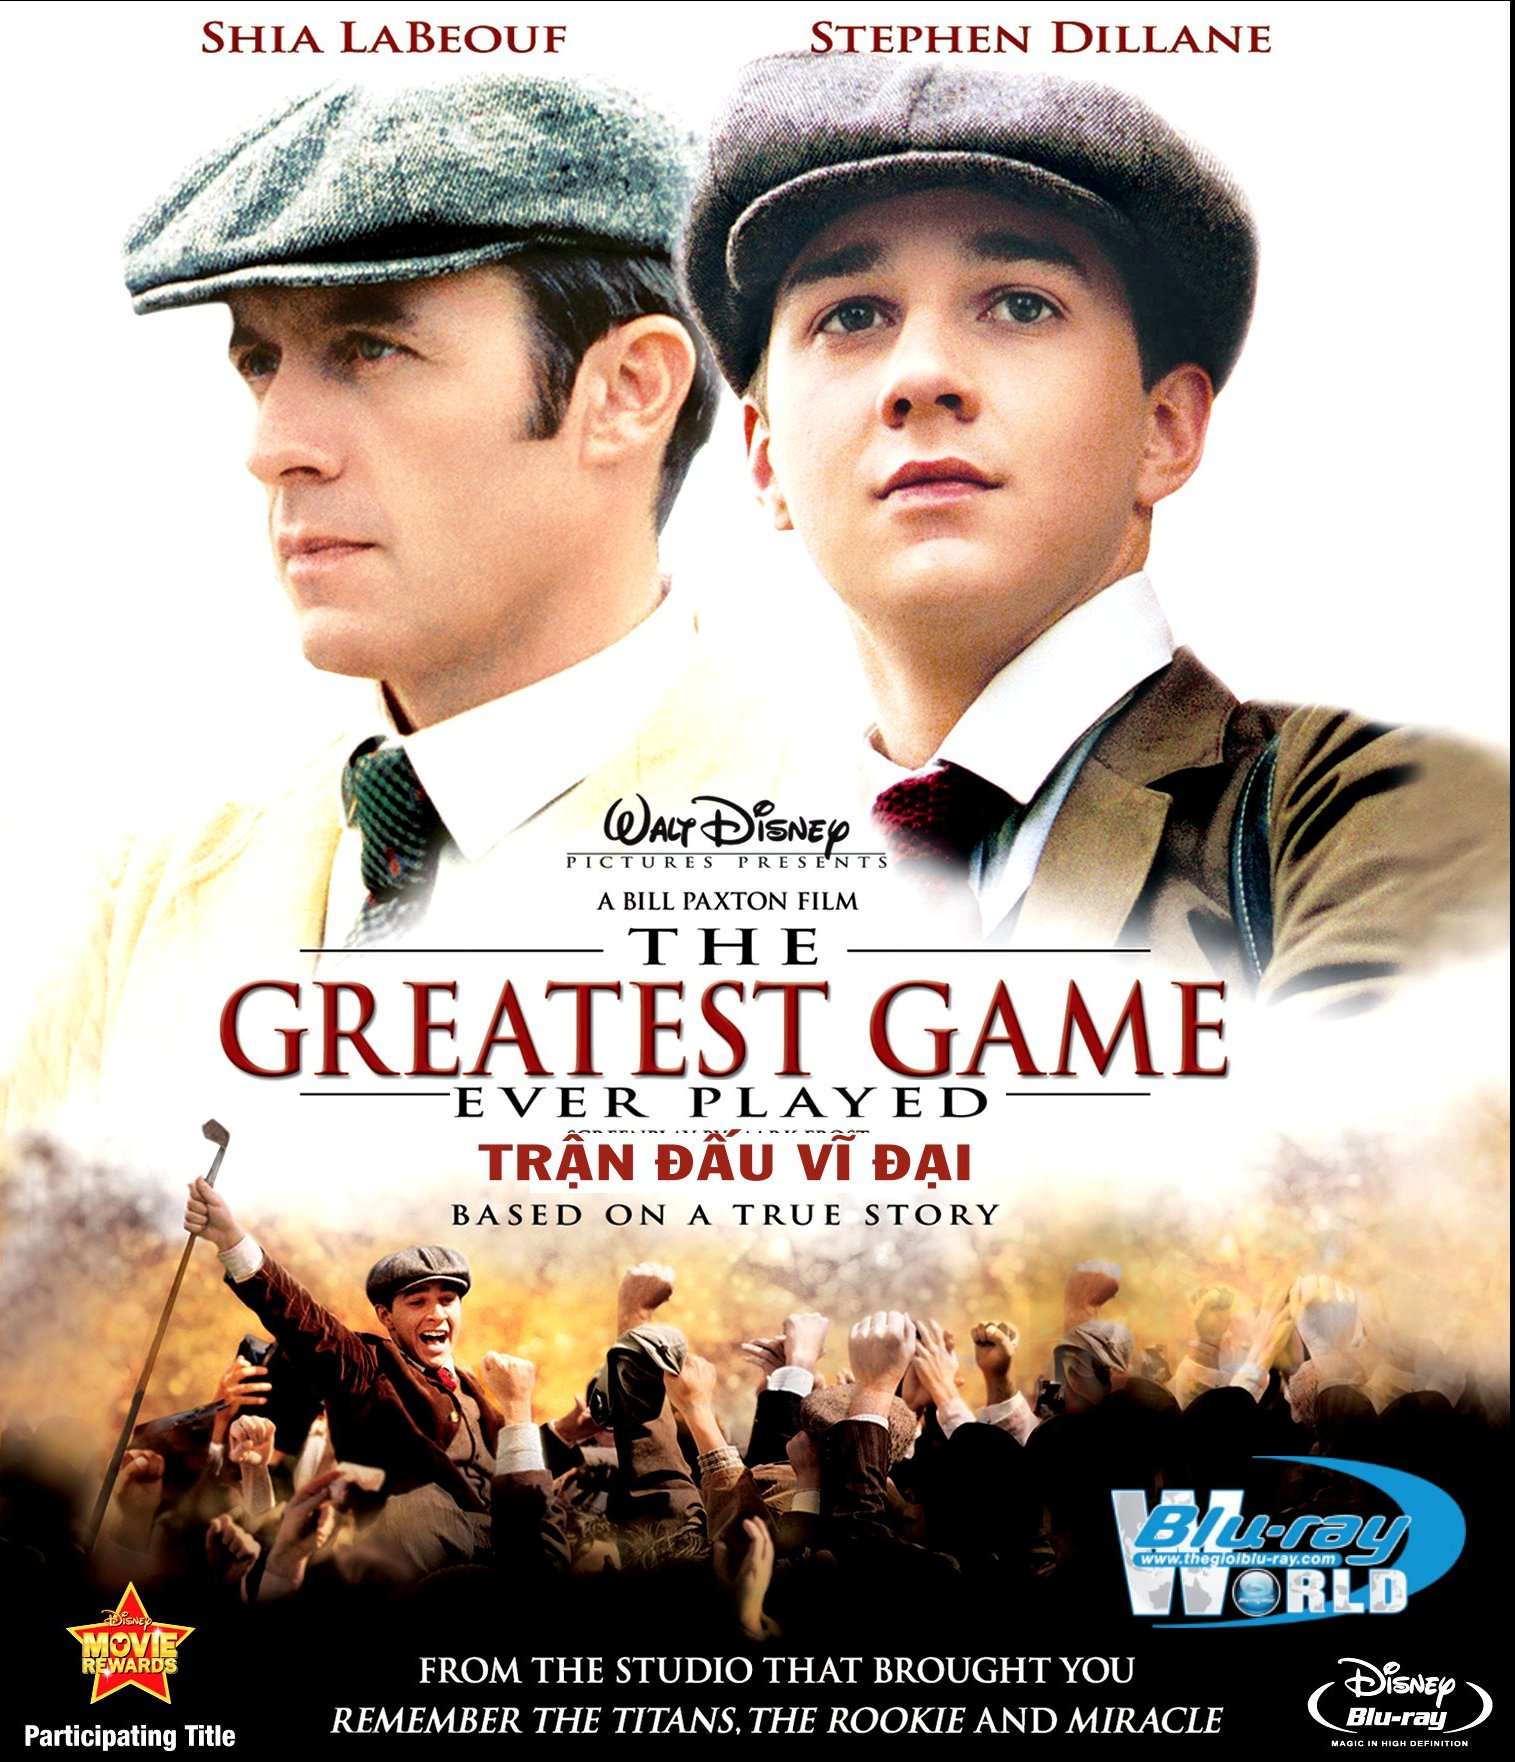 B2310. The Greatest Game Ever Played - TRẬN ĐẤU VĨ ĐẠI 2D25G (DTS-HD MA 5.1)